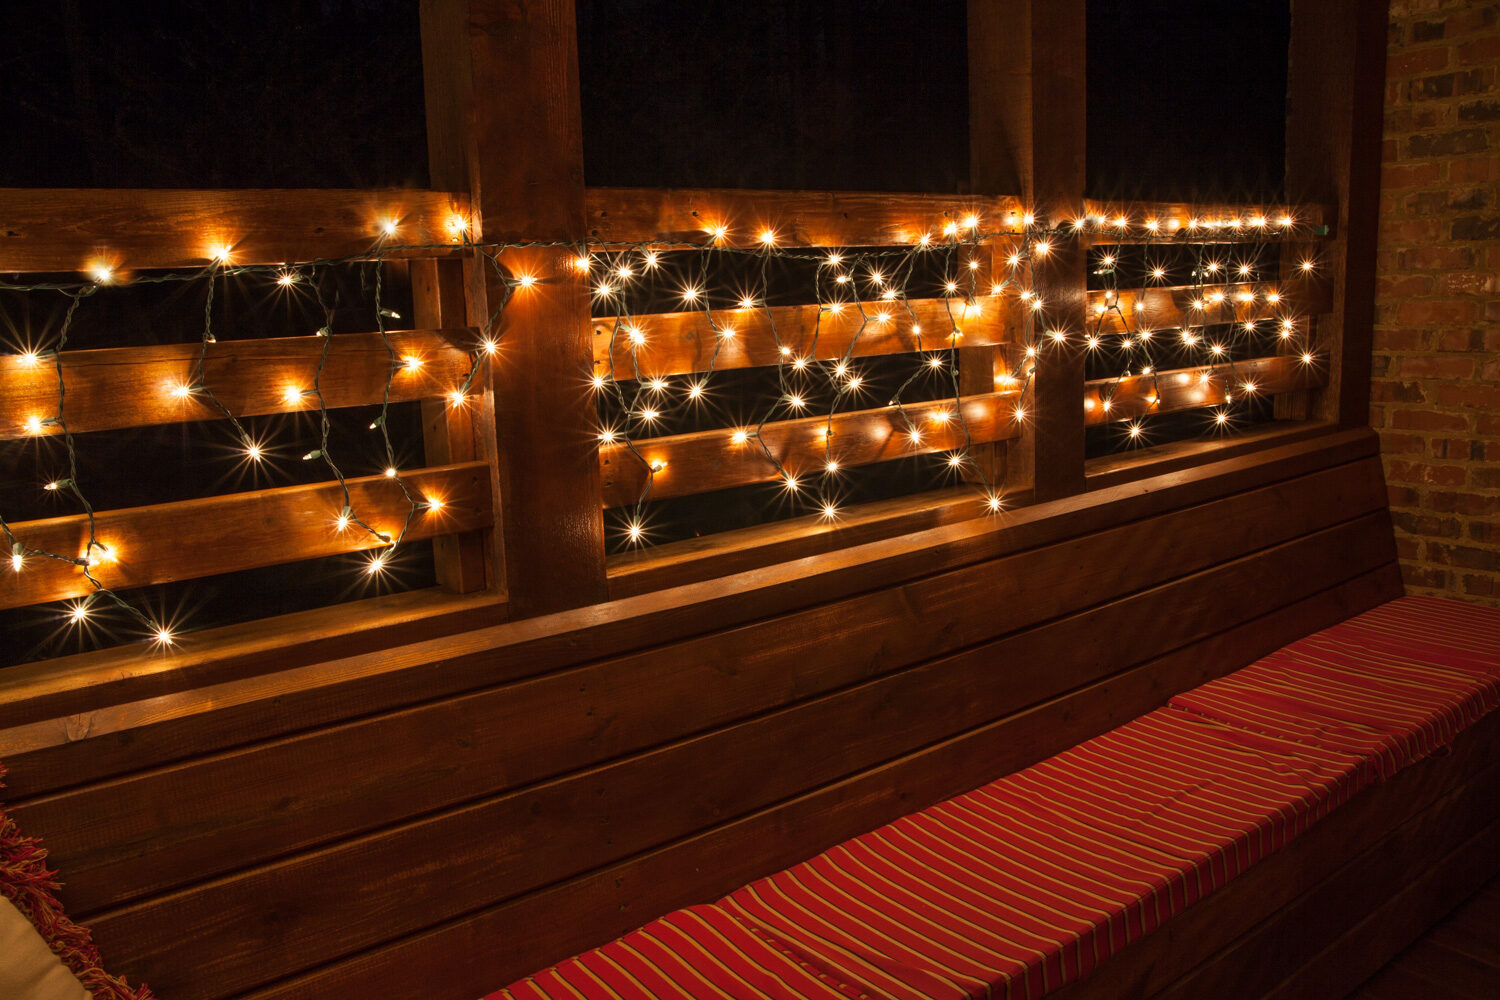 outdoor deck lighting. create beautiful outdoor lighting by hanging white lights from decks and patios deck